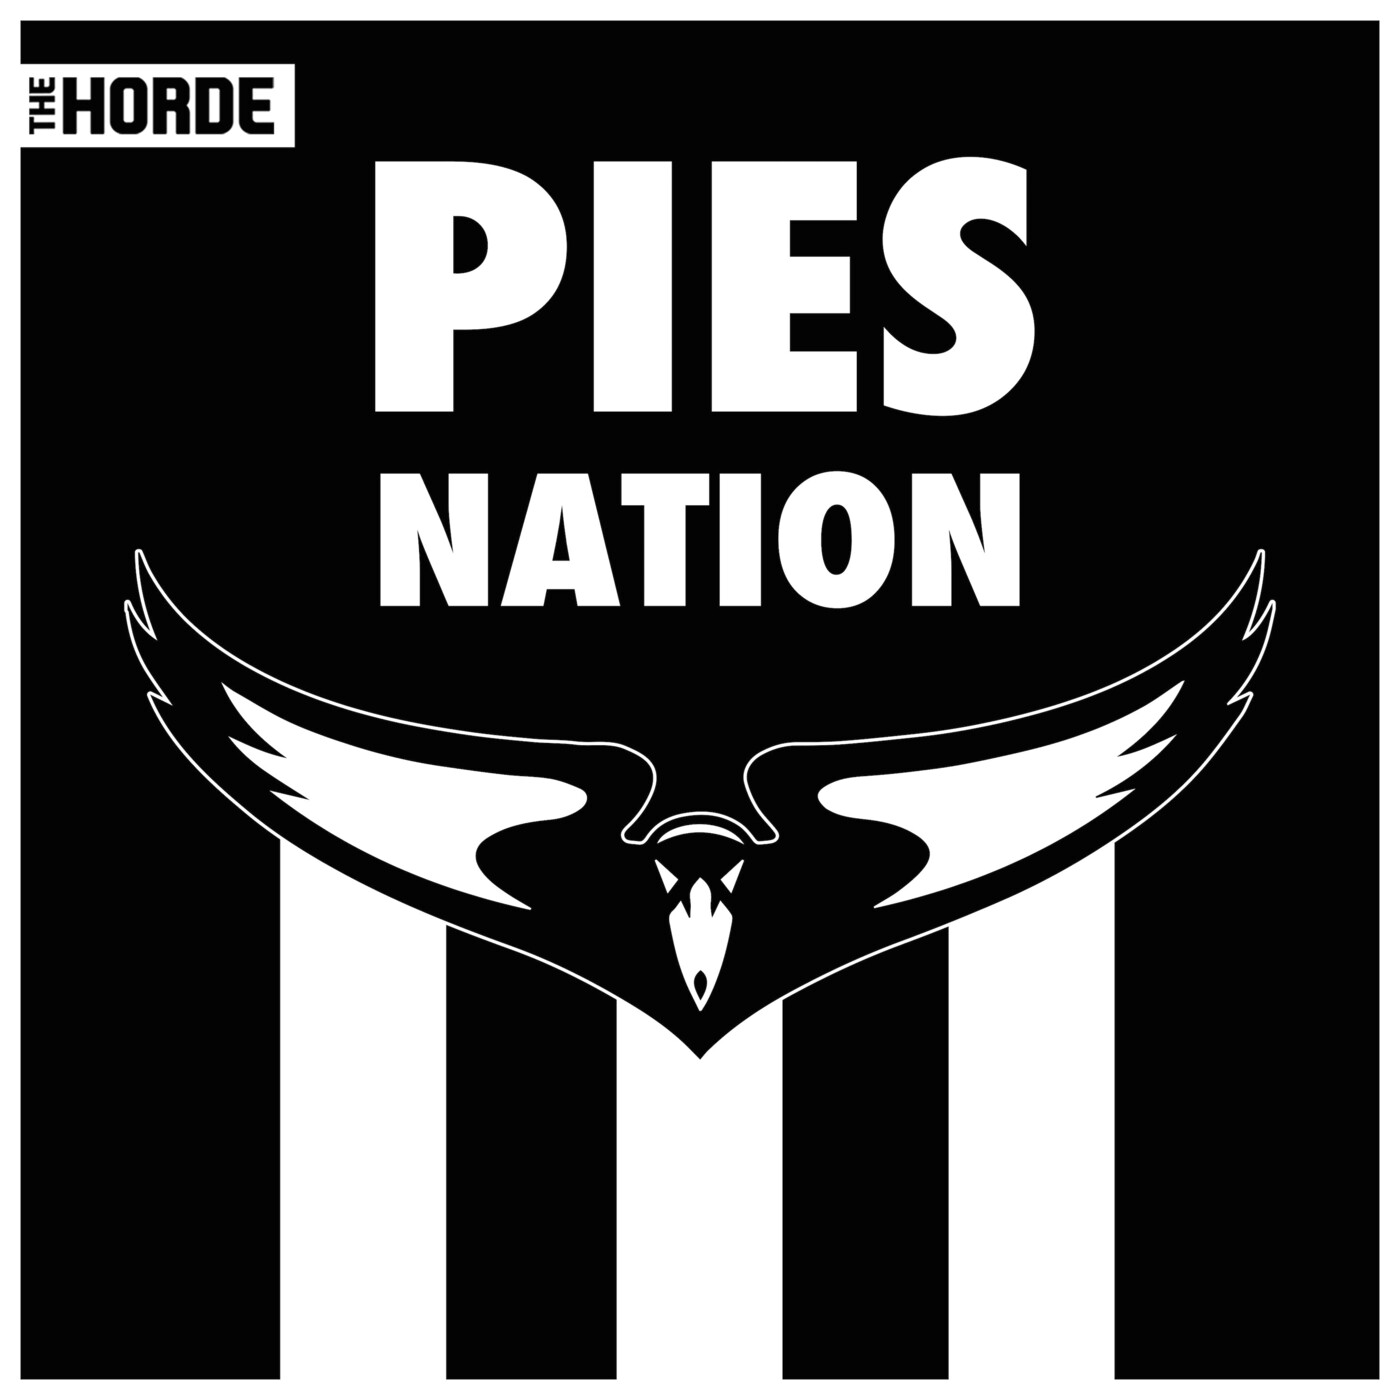 Pies Nation: Going all in